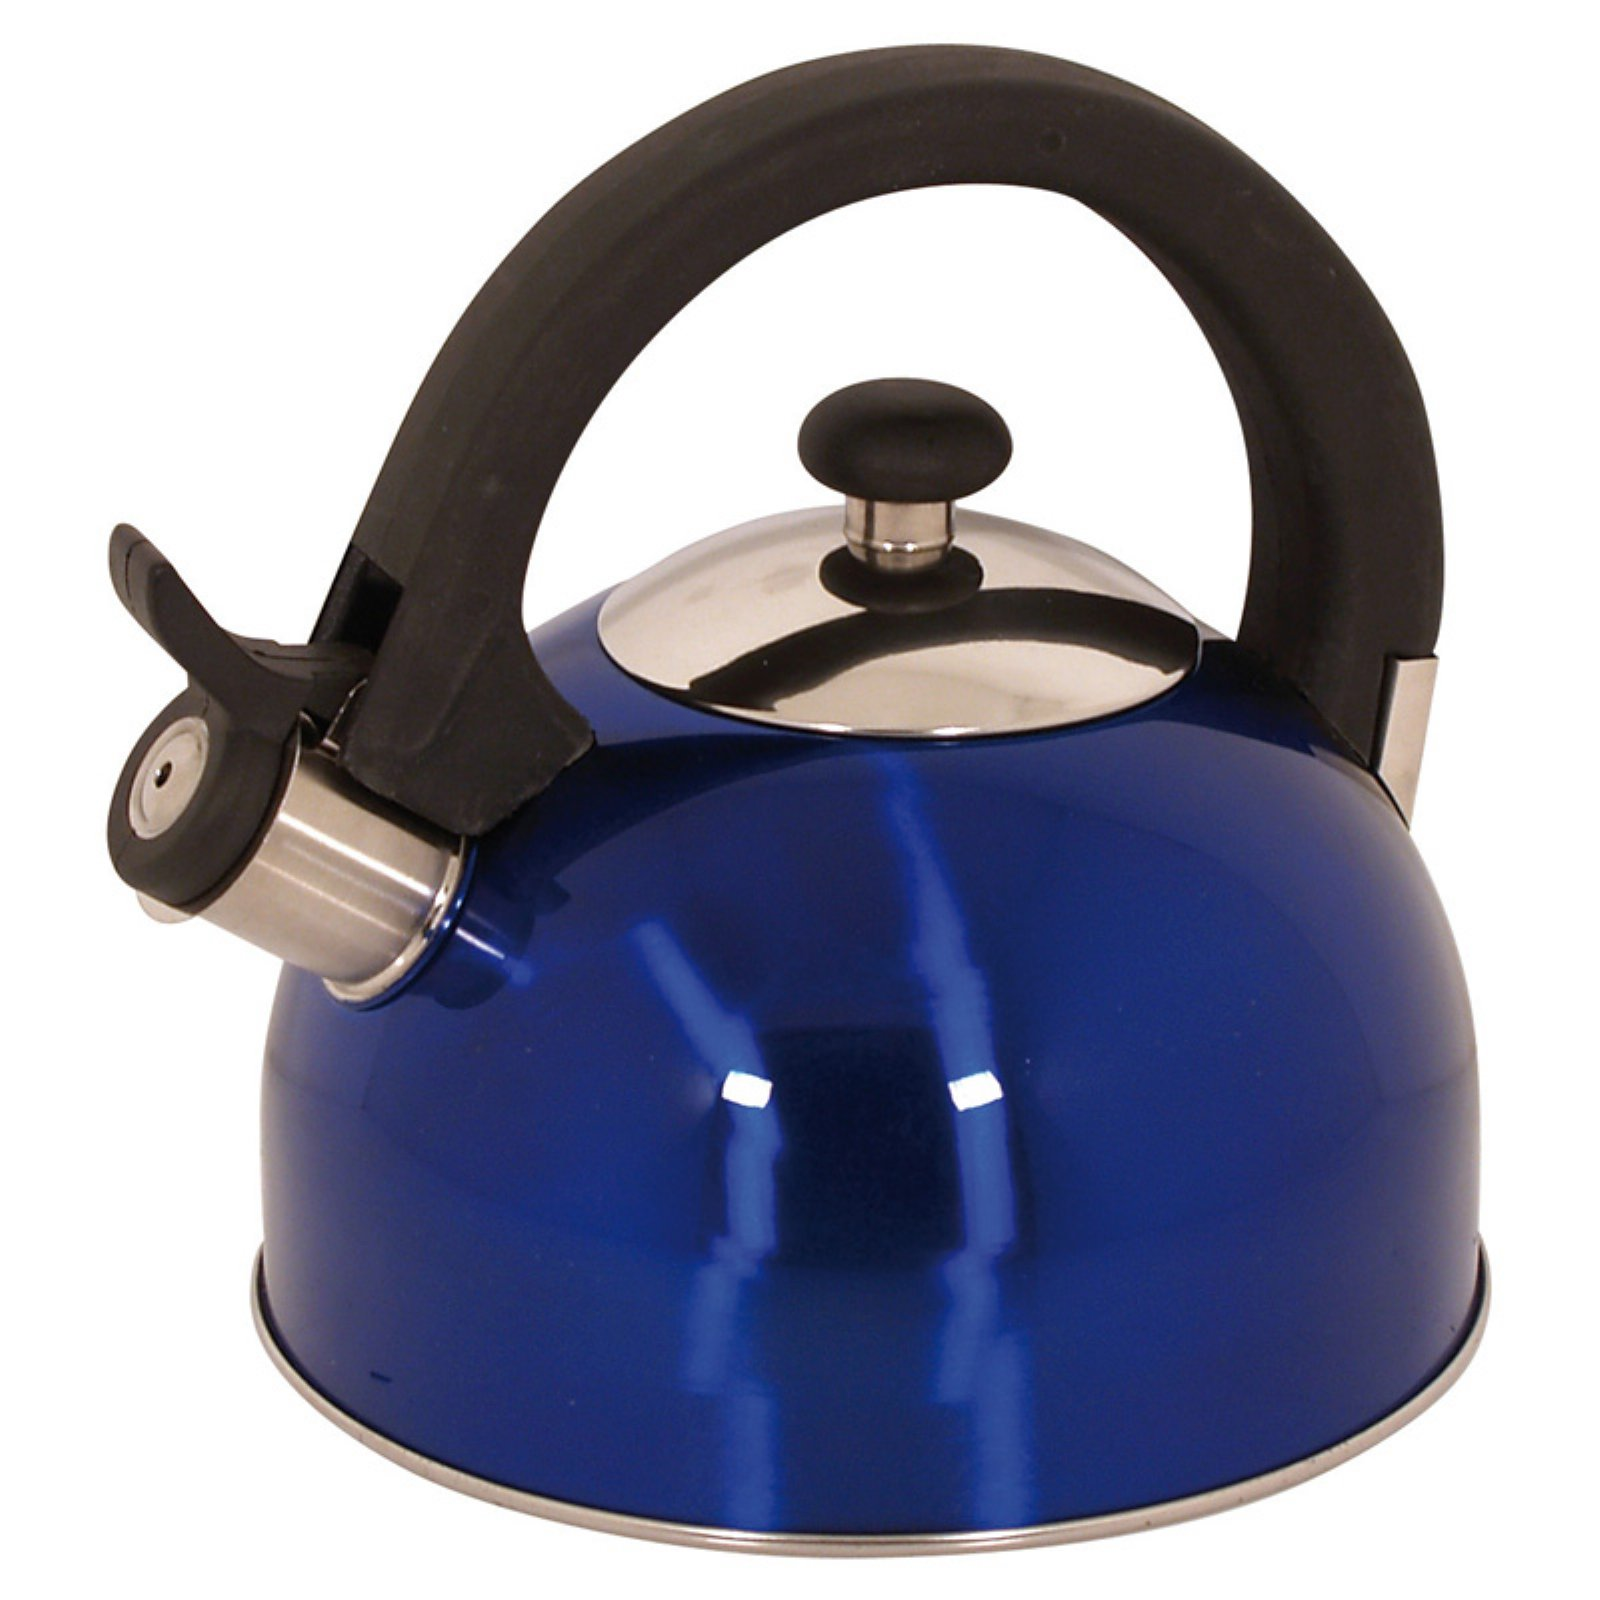 Sabal 2 Qts. Stainless Steel Stovetop Tea Kettle with Whistle in Blue